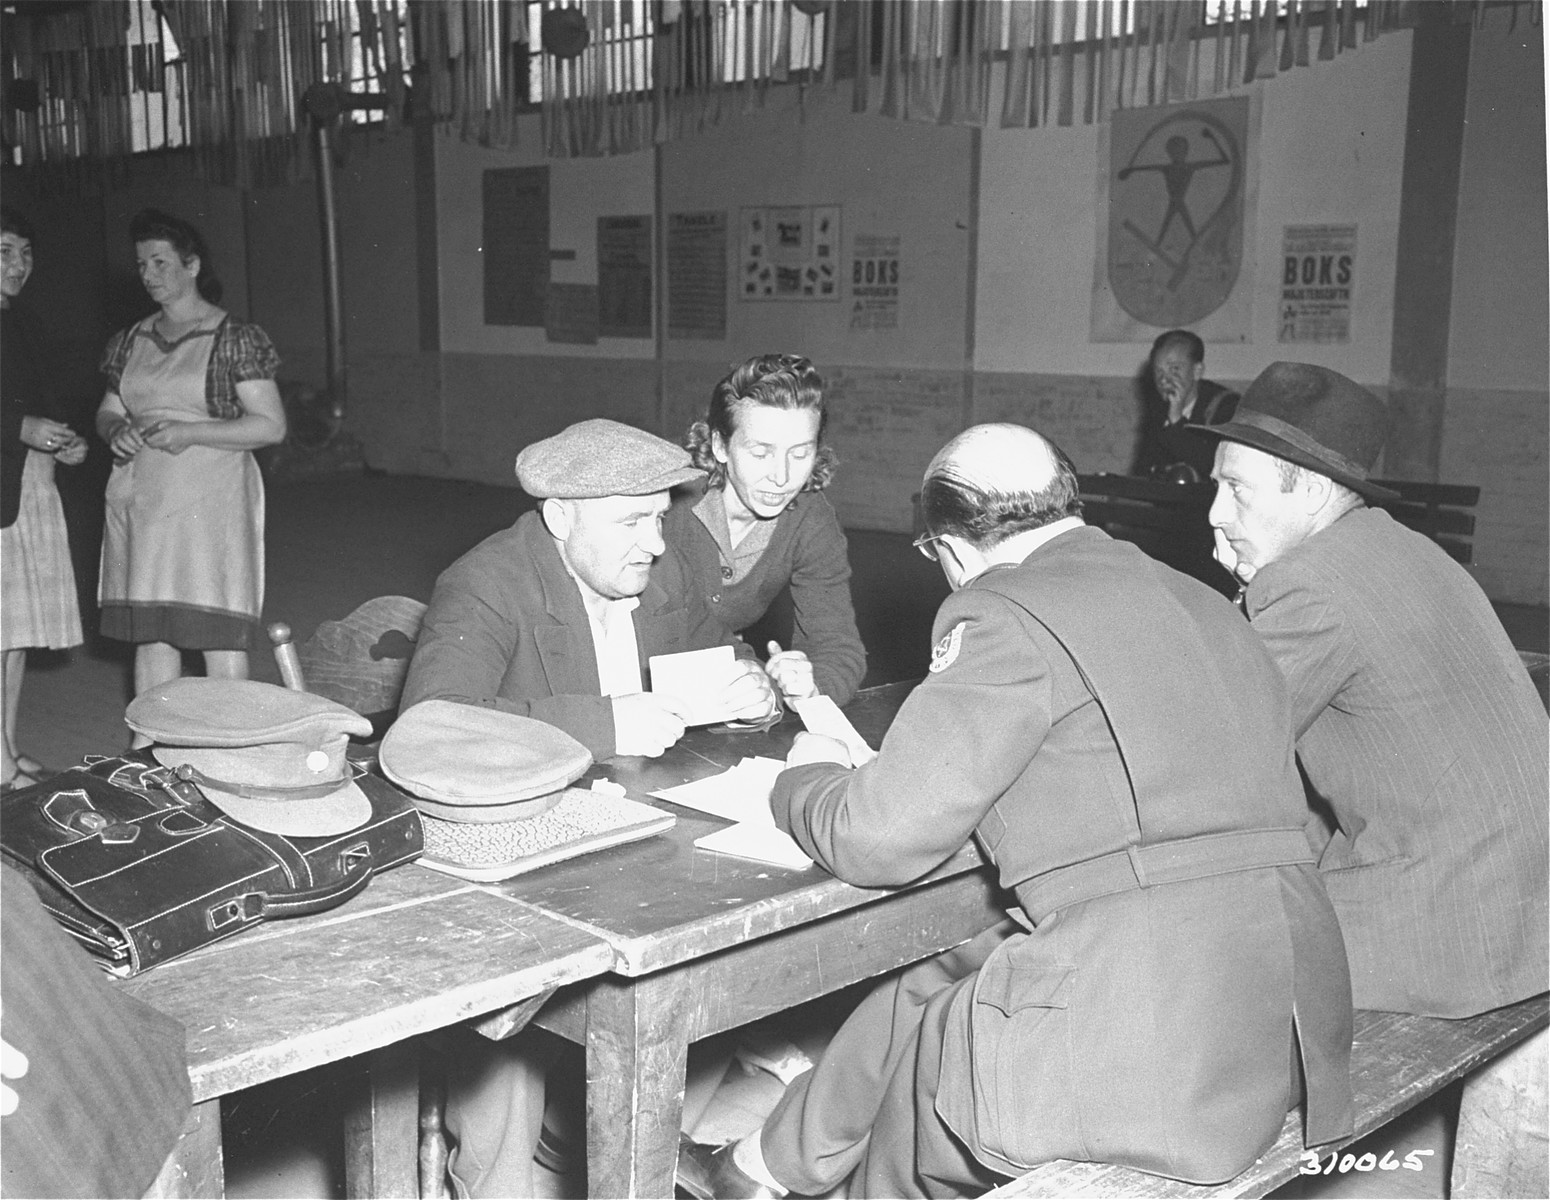 Two Jewish displaced persons at the DP camp in Wetzlar register to go to Palestine.  The Jewish Relief Organization has made arrangements for the immigration of Jewish DP's to Palestine.  At that time no men of military age were allowed to emigrate to Palestine.